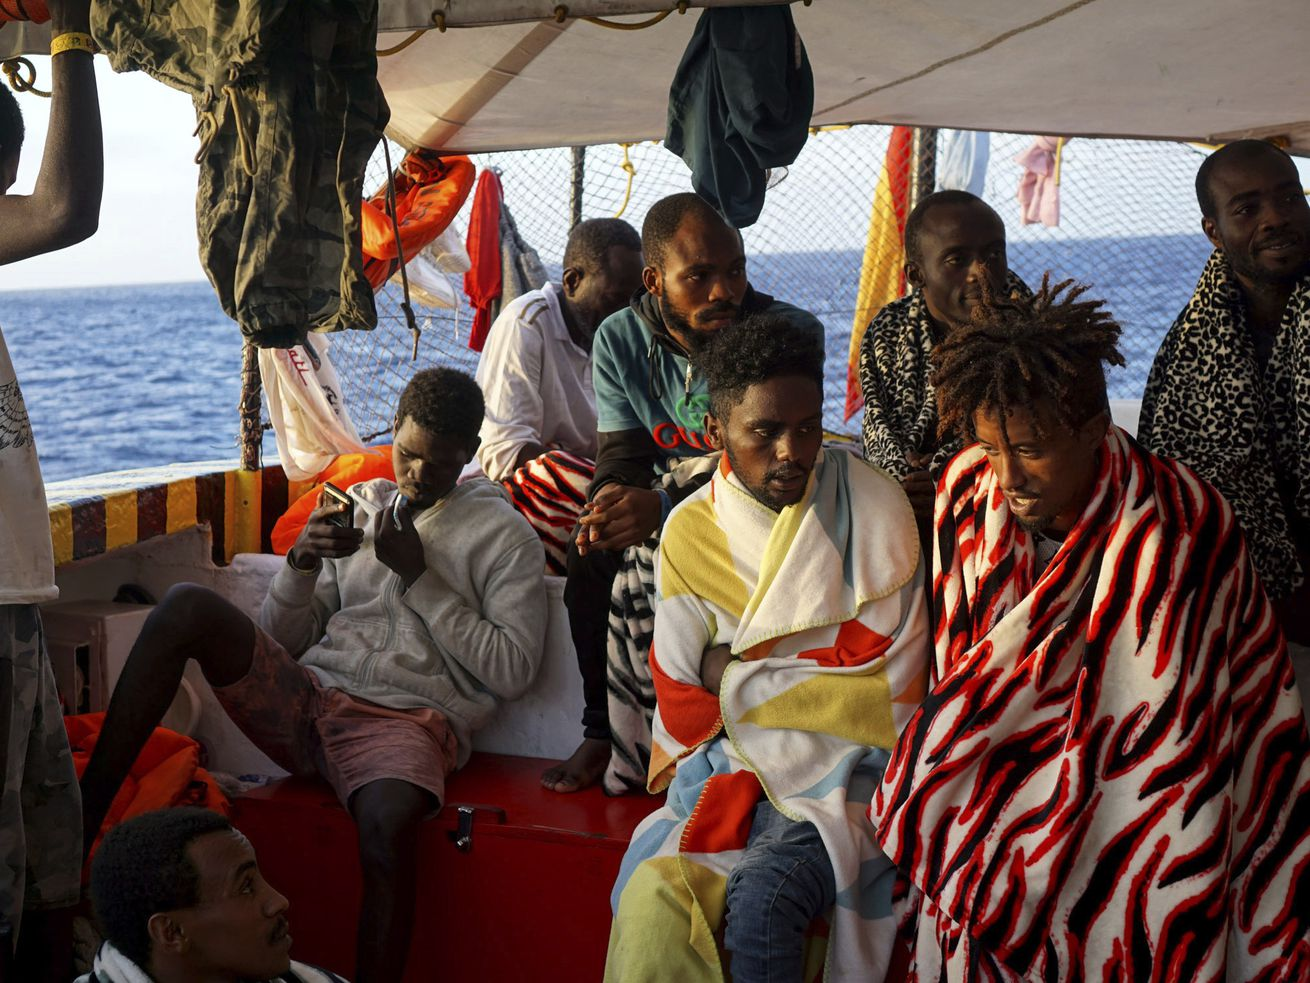 Italy's political crisis on display in migrant boat battle